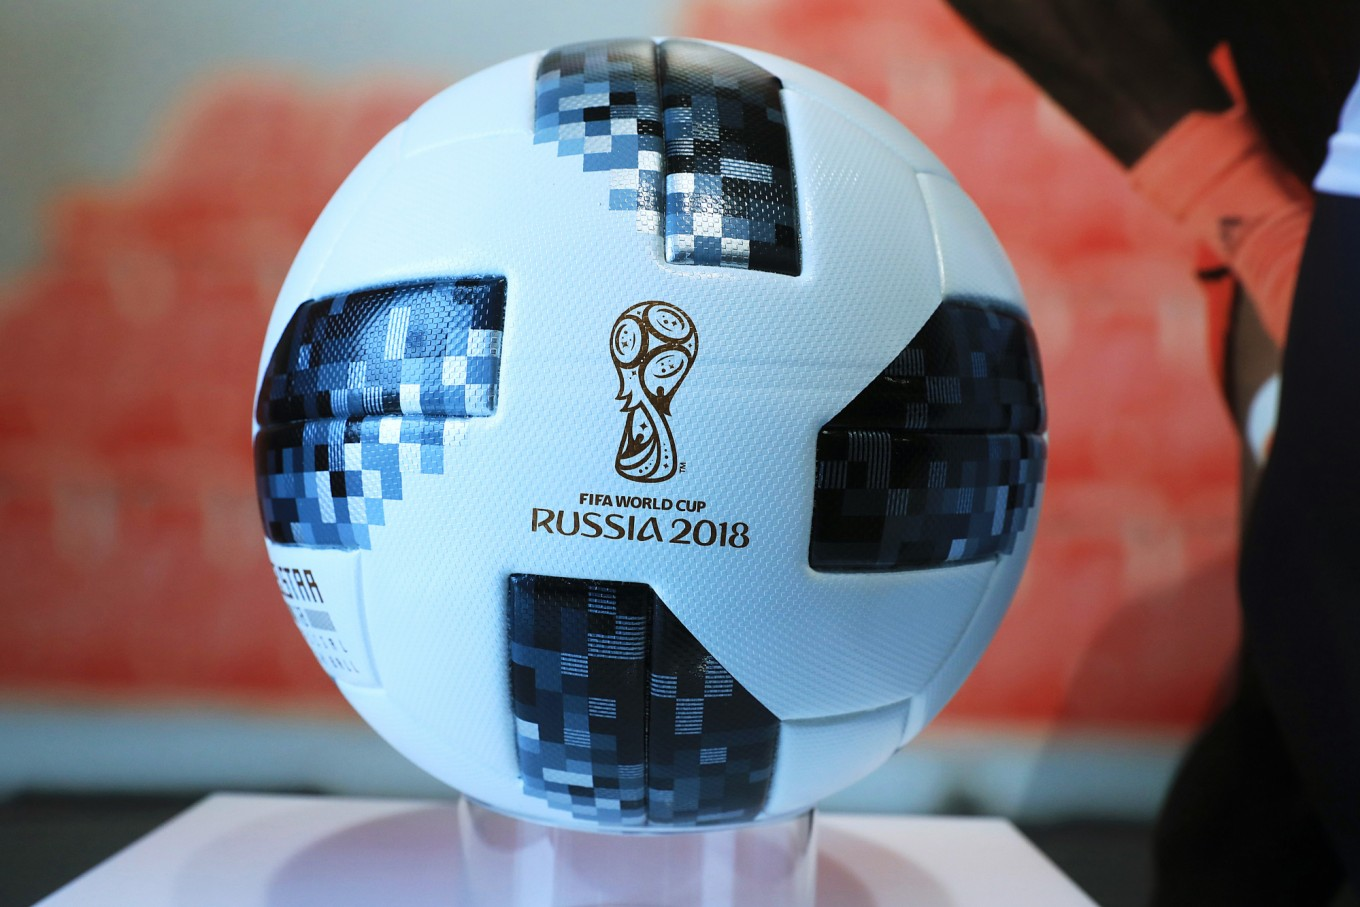 Adidas's high hopes for Russia's World Cup thwarted by sanctions